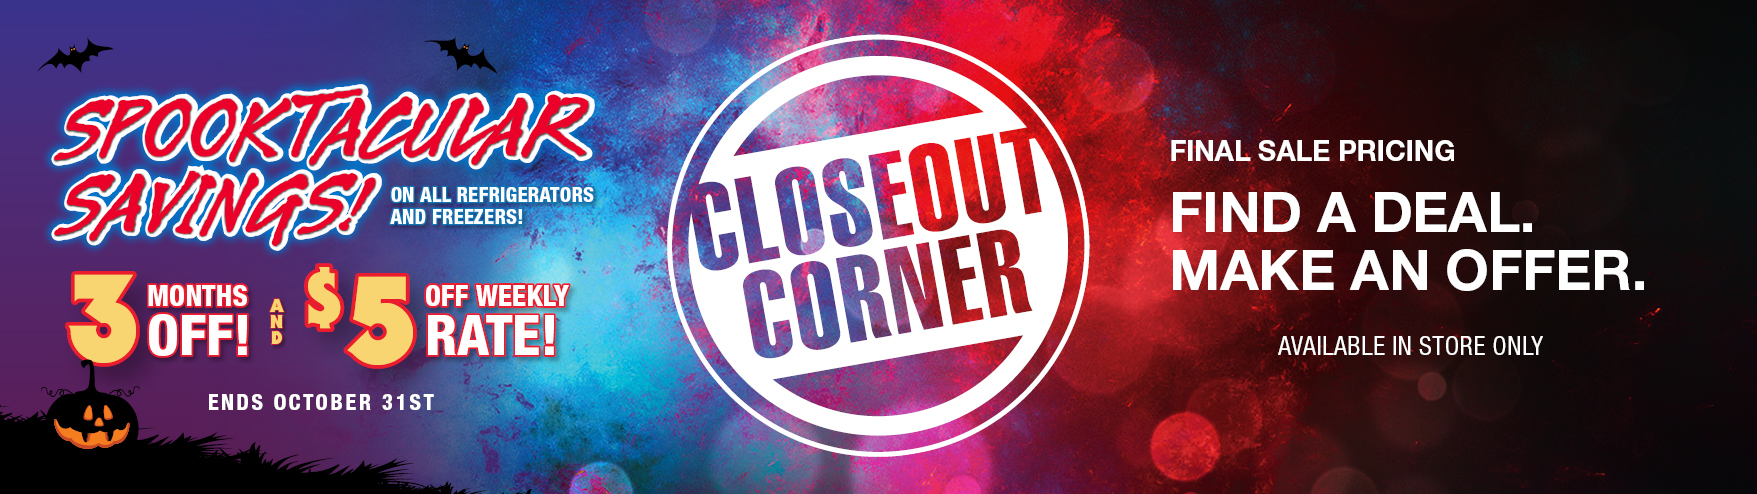 Limited Time Closeout Deals